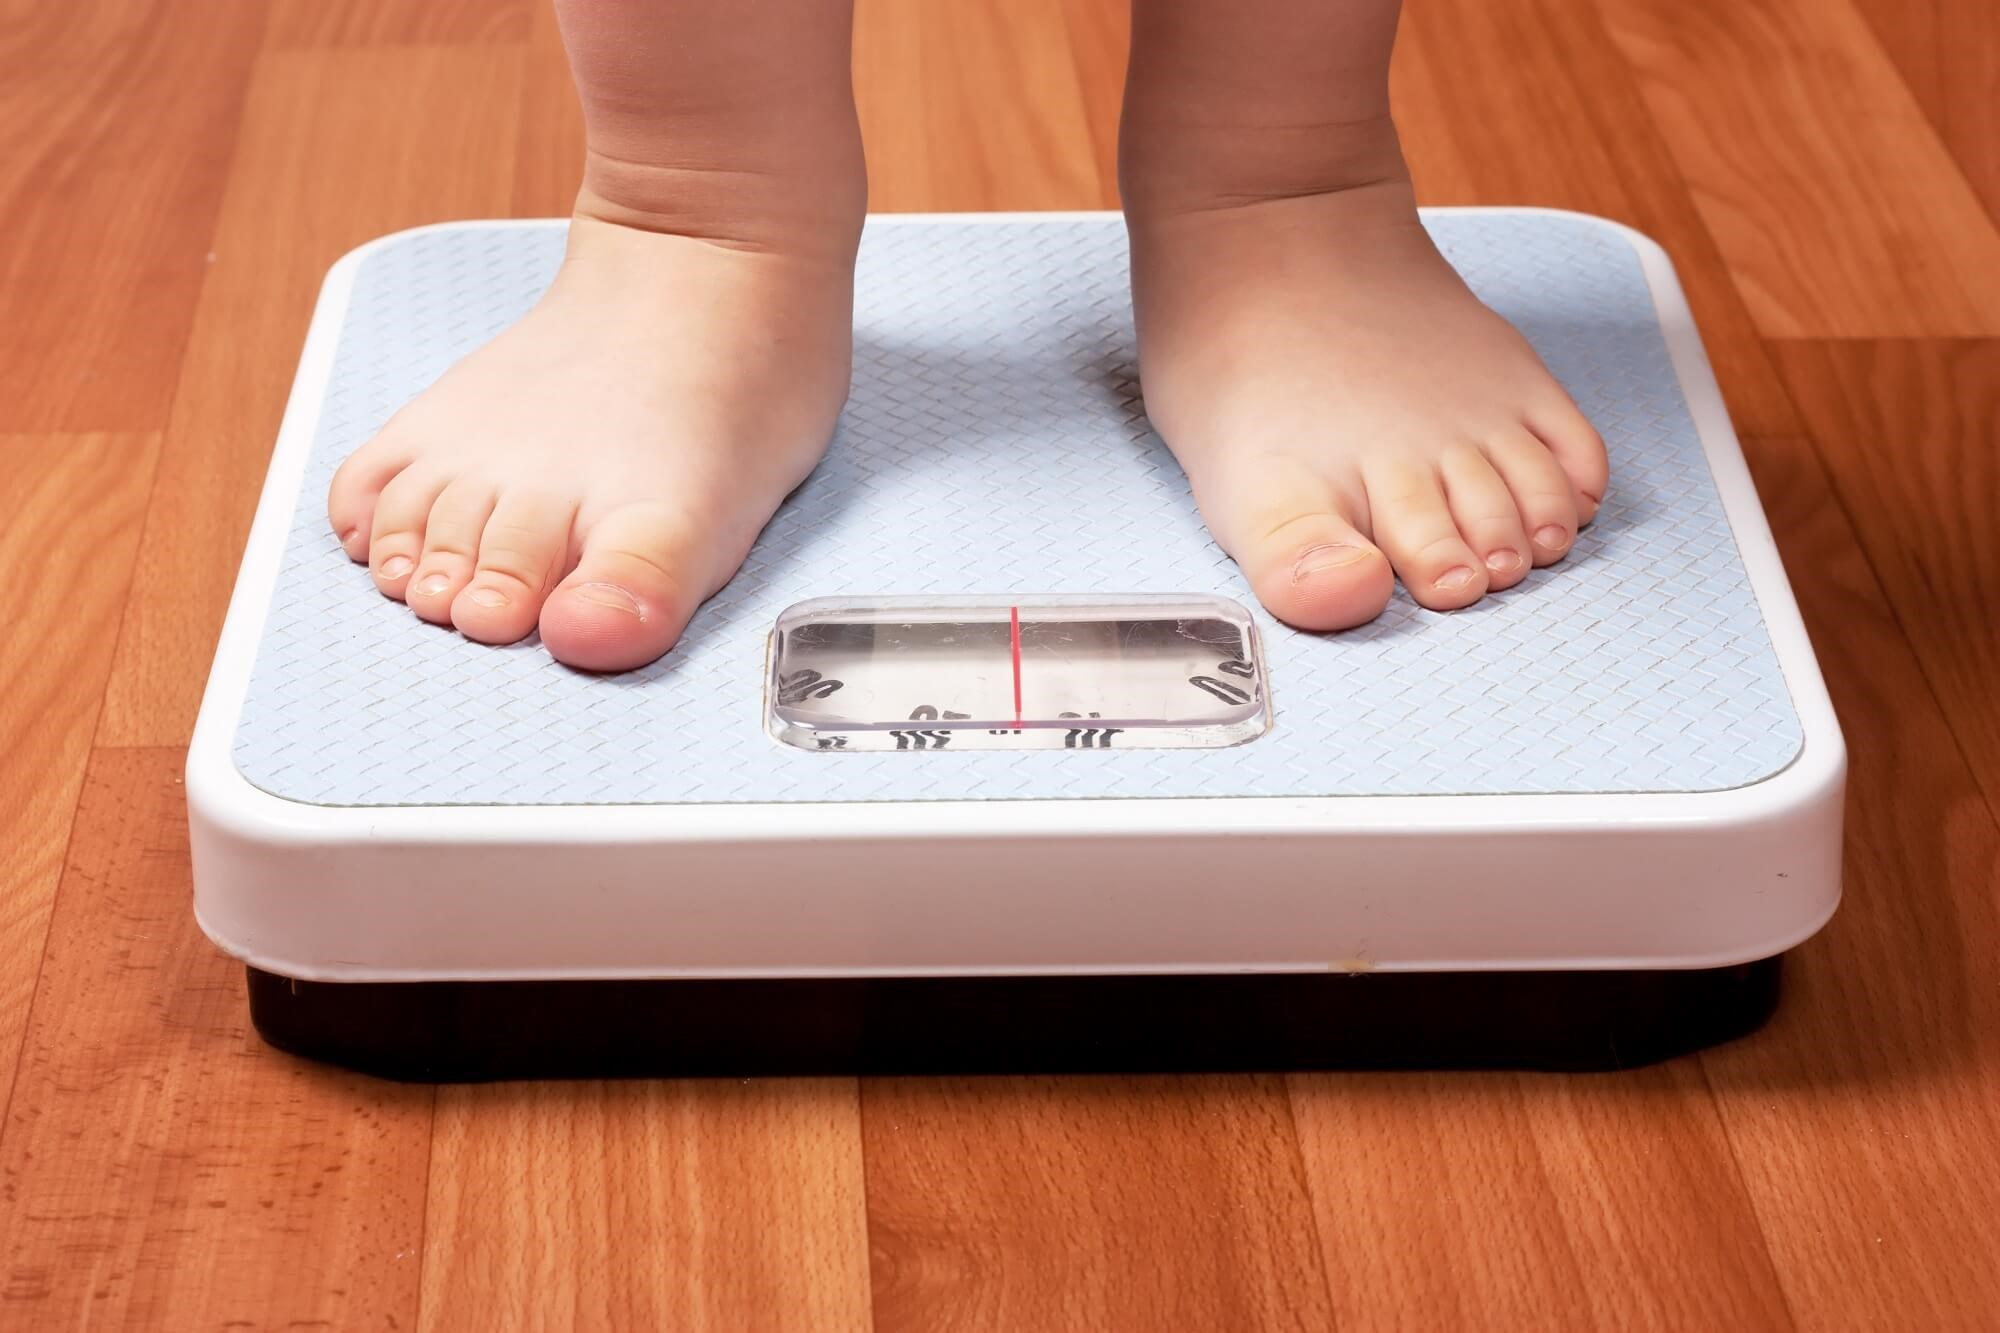 Early Age at BMI Rebound May Be a Risk Factor for Cardiometabolic Disorders